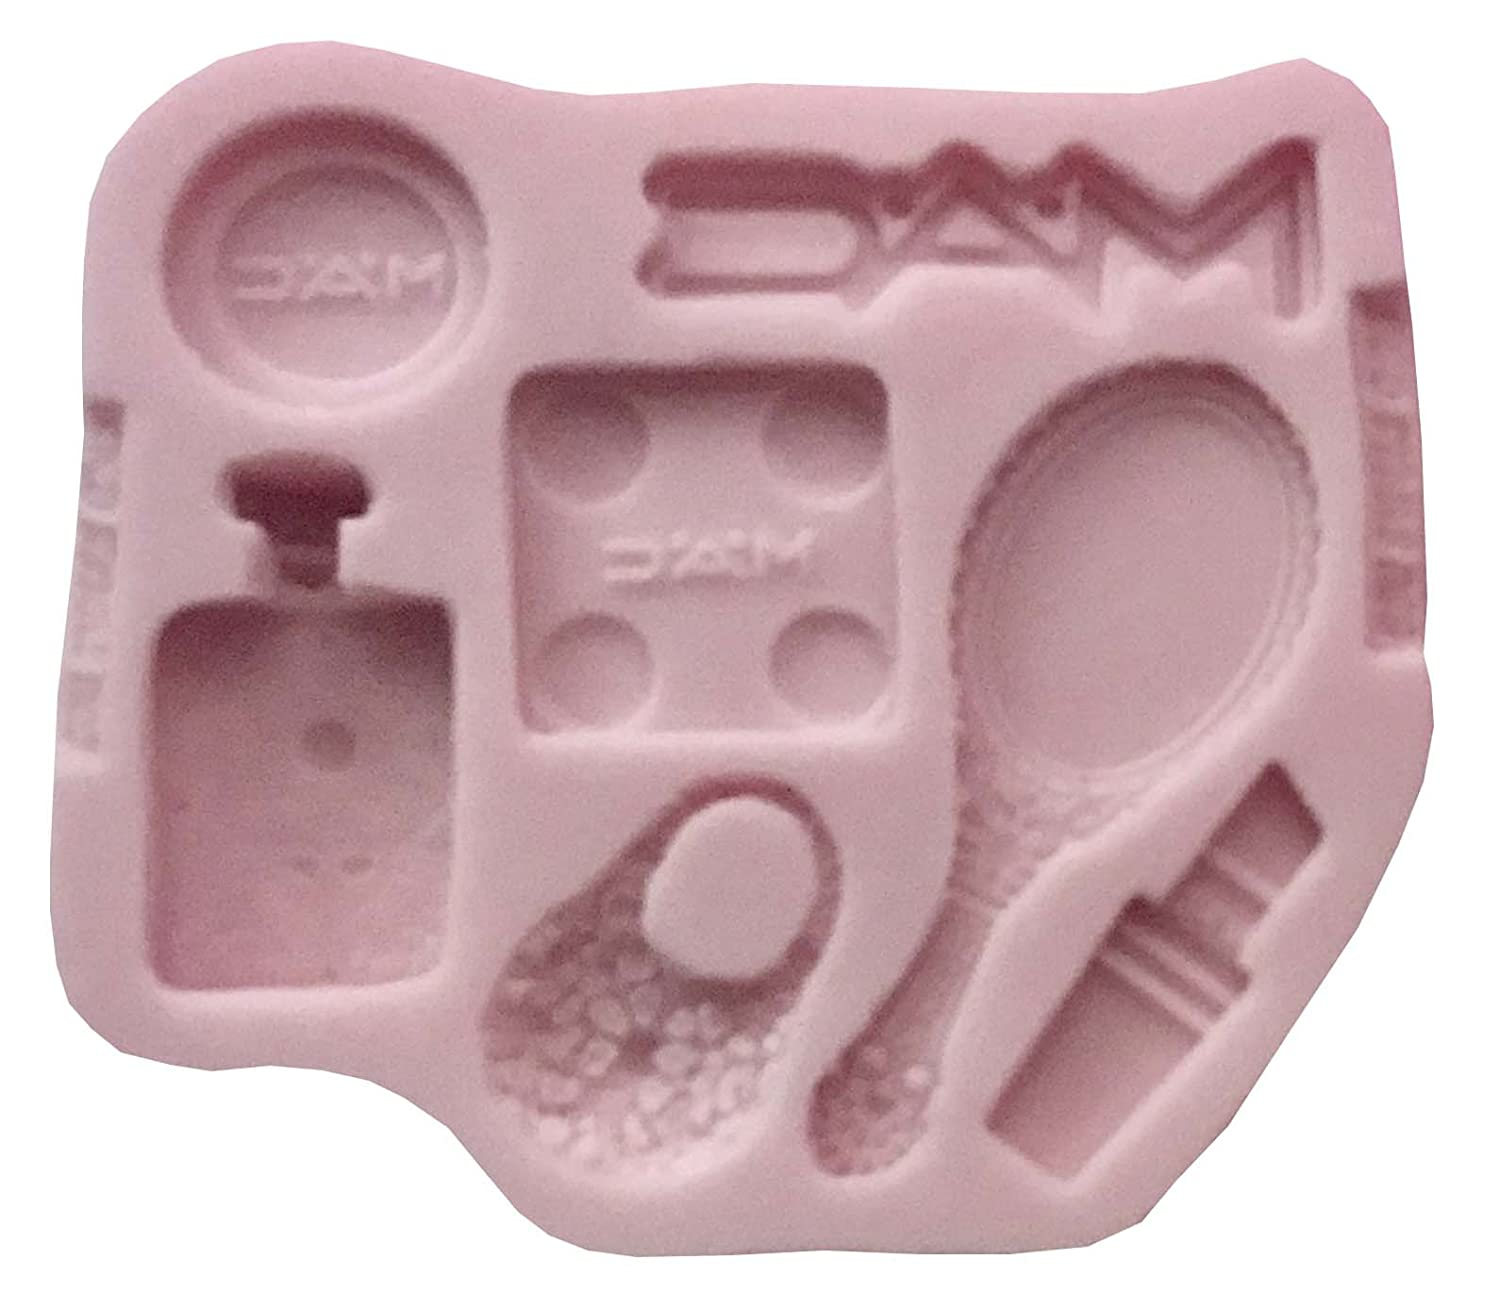 MAC SET GIRL logo, make up, famous brand Silicone Mold By Oh! Sweet Art